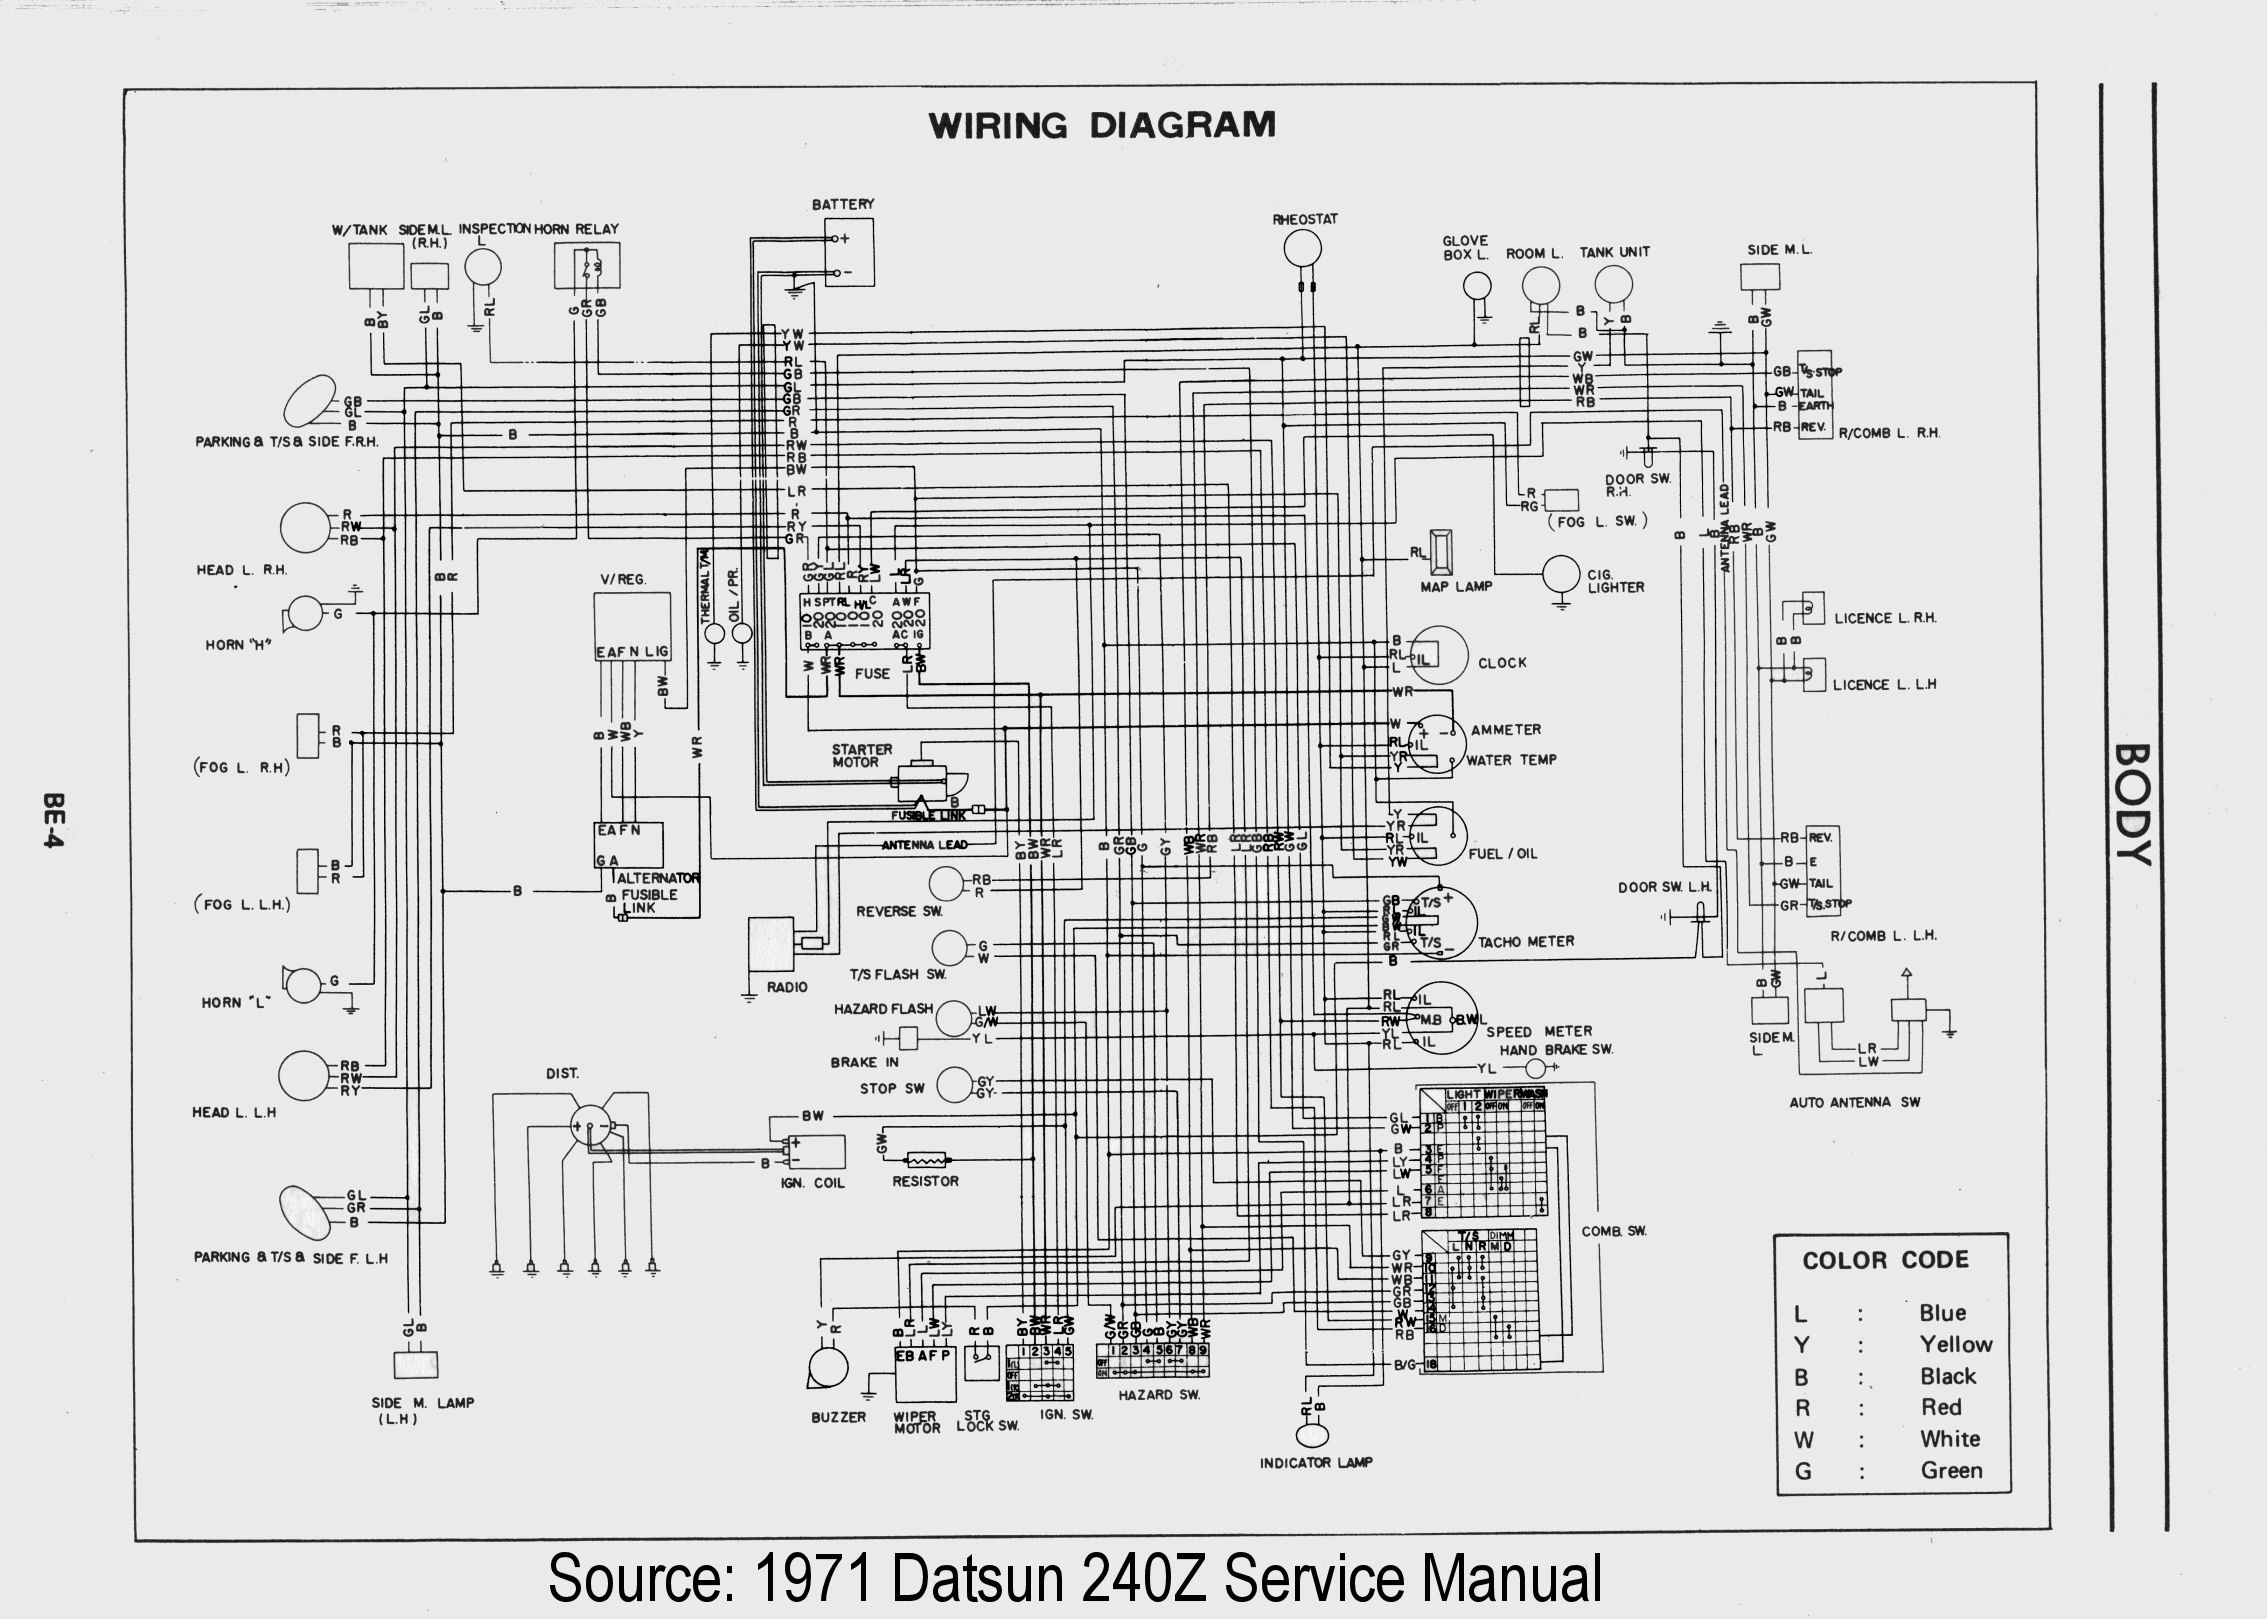 Wiring Diagram HiRes 2 generic wiring troubleshooting checklist woodworkerb 280z fuse box upgrade at bakdesigns.co